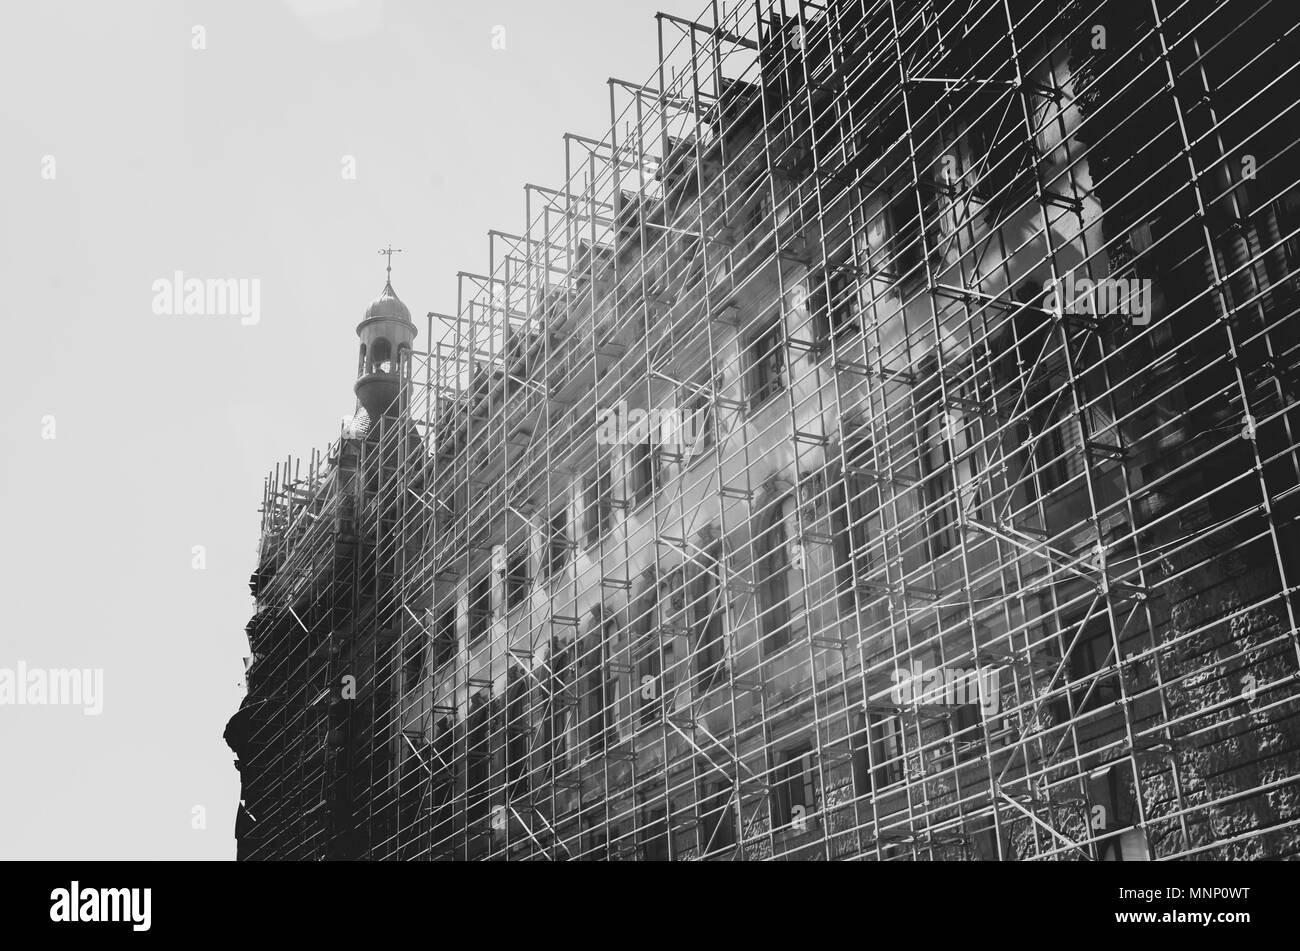 Scaffolding for the renovation of Haydarpasa train station, Istanbul, Turkey - Stock Image